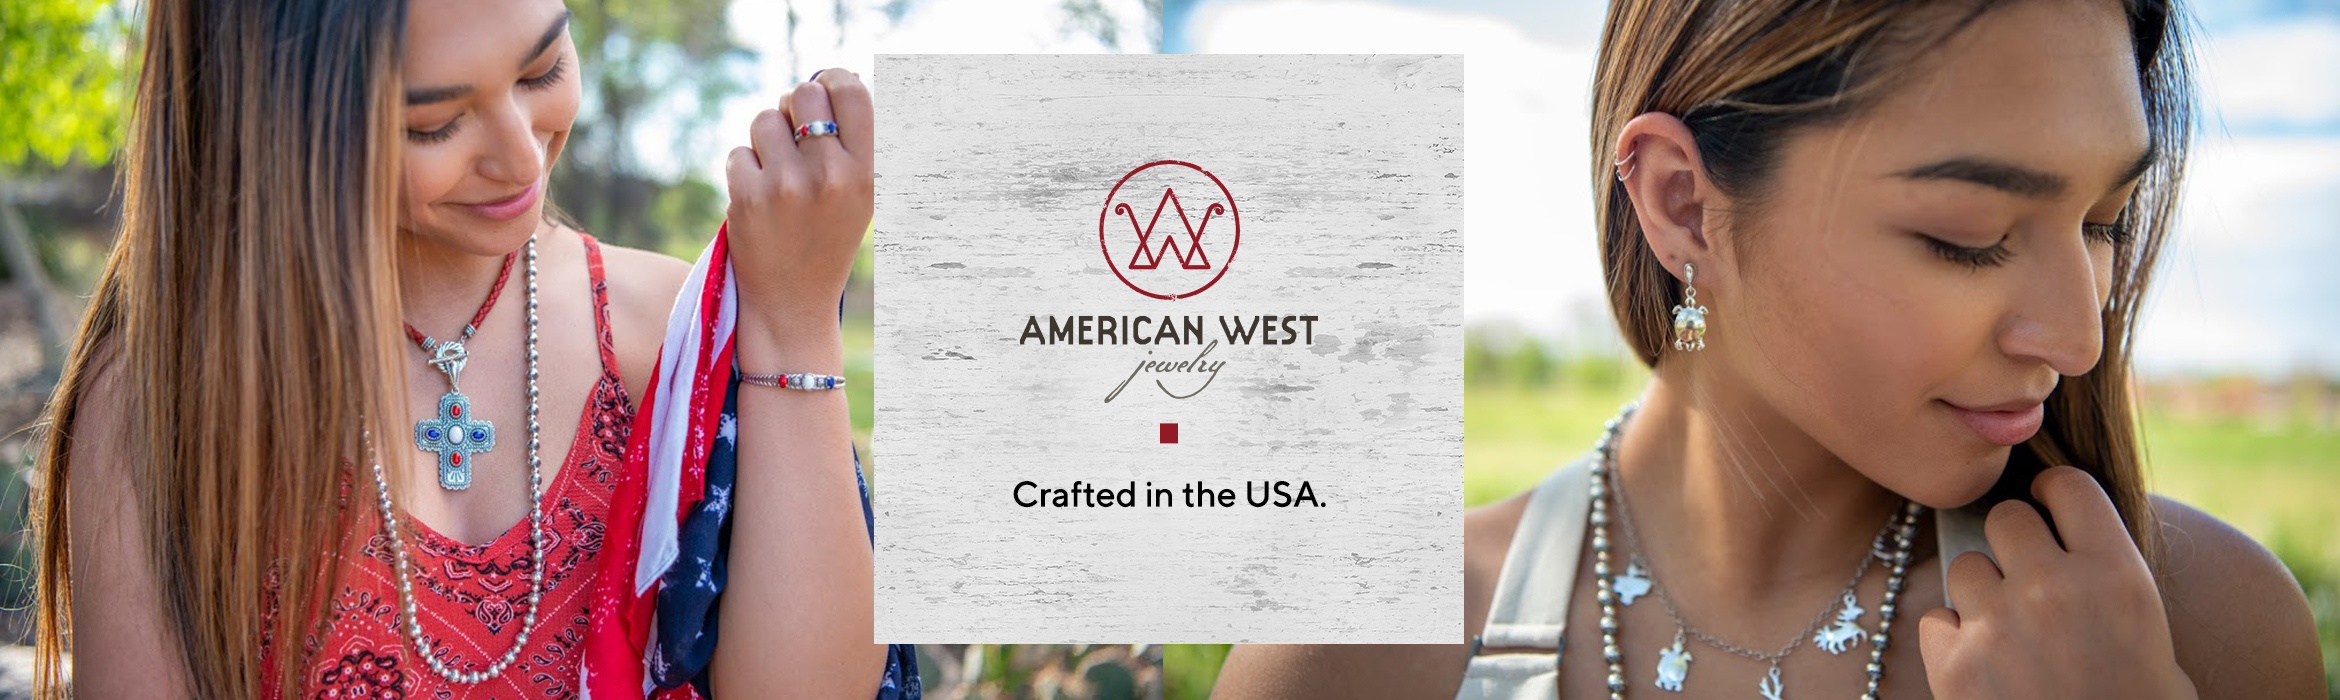 Crafted in the USA.